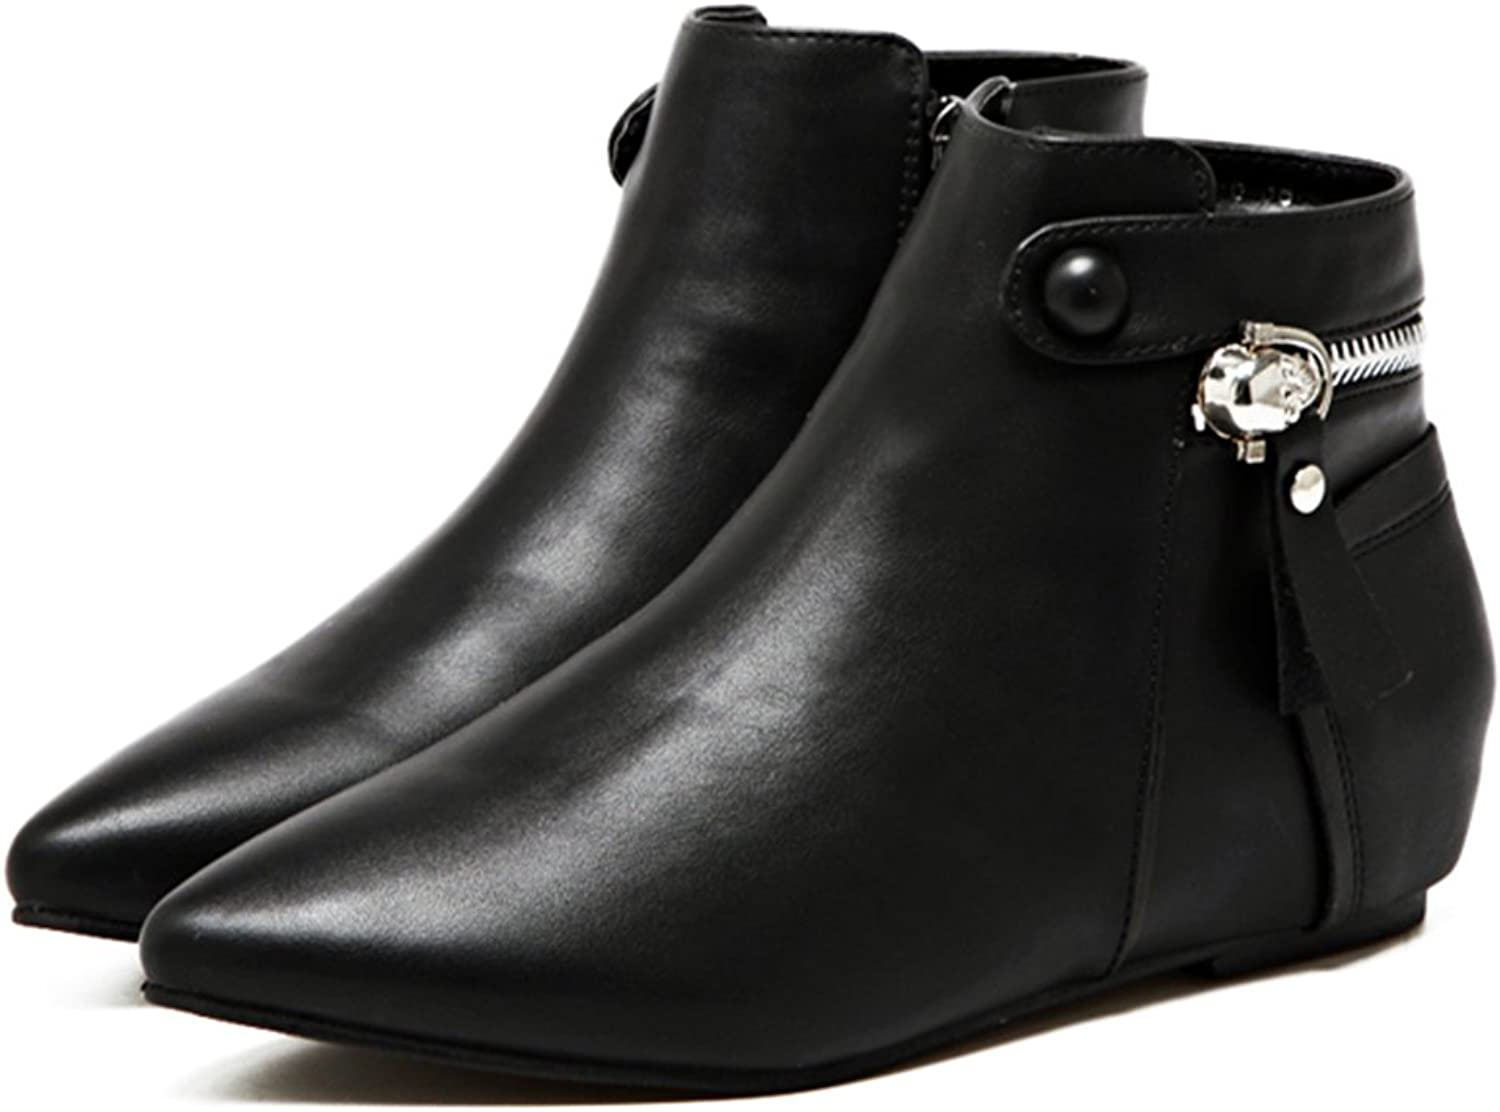 QZUnique Short Ankle Boots Fashion Women's Flat shoes with Skull Zipper